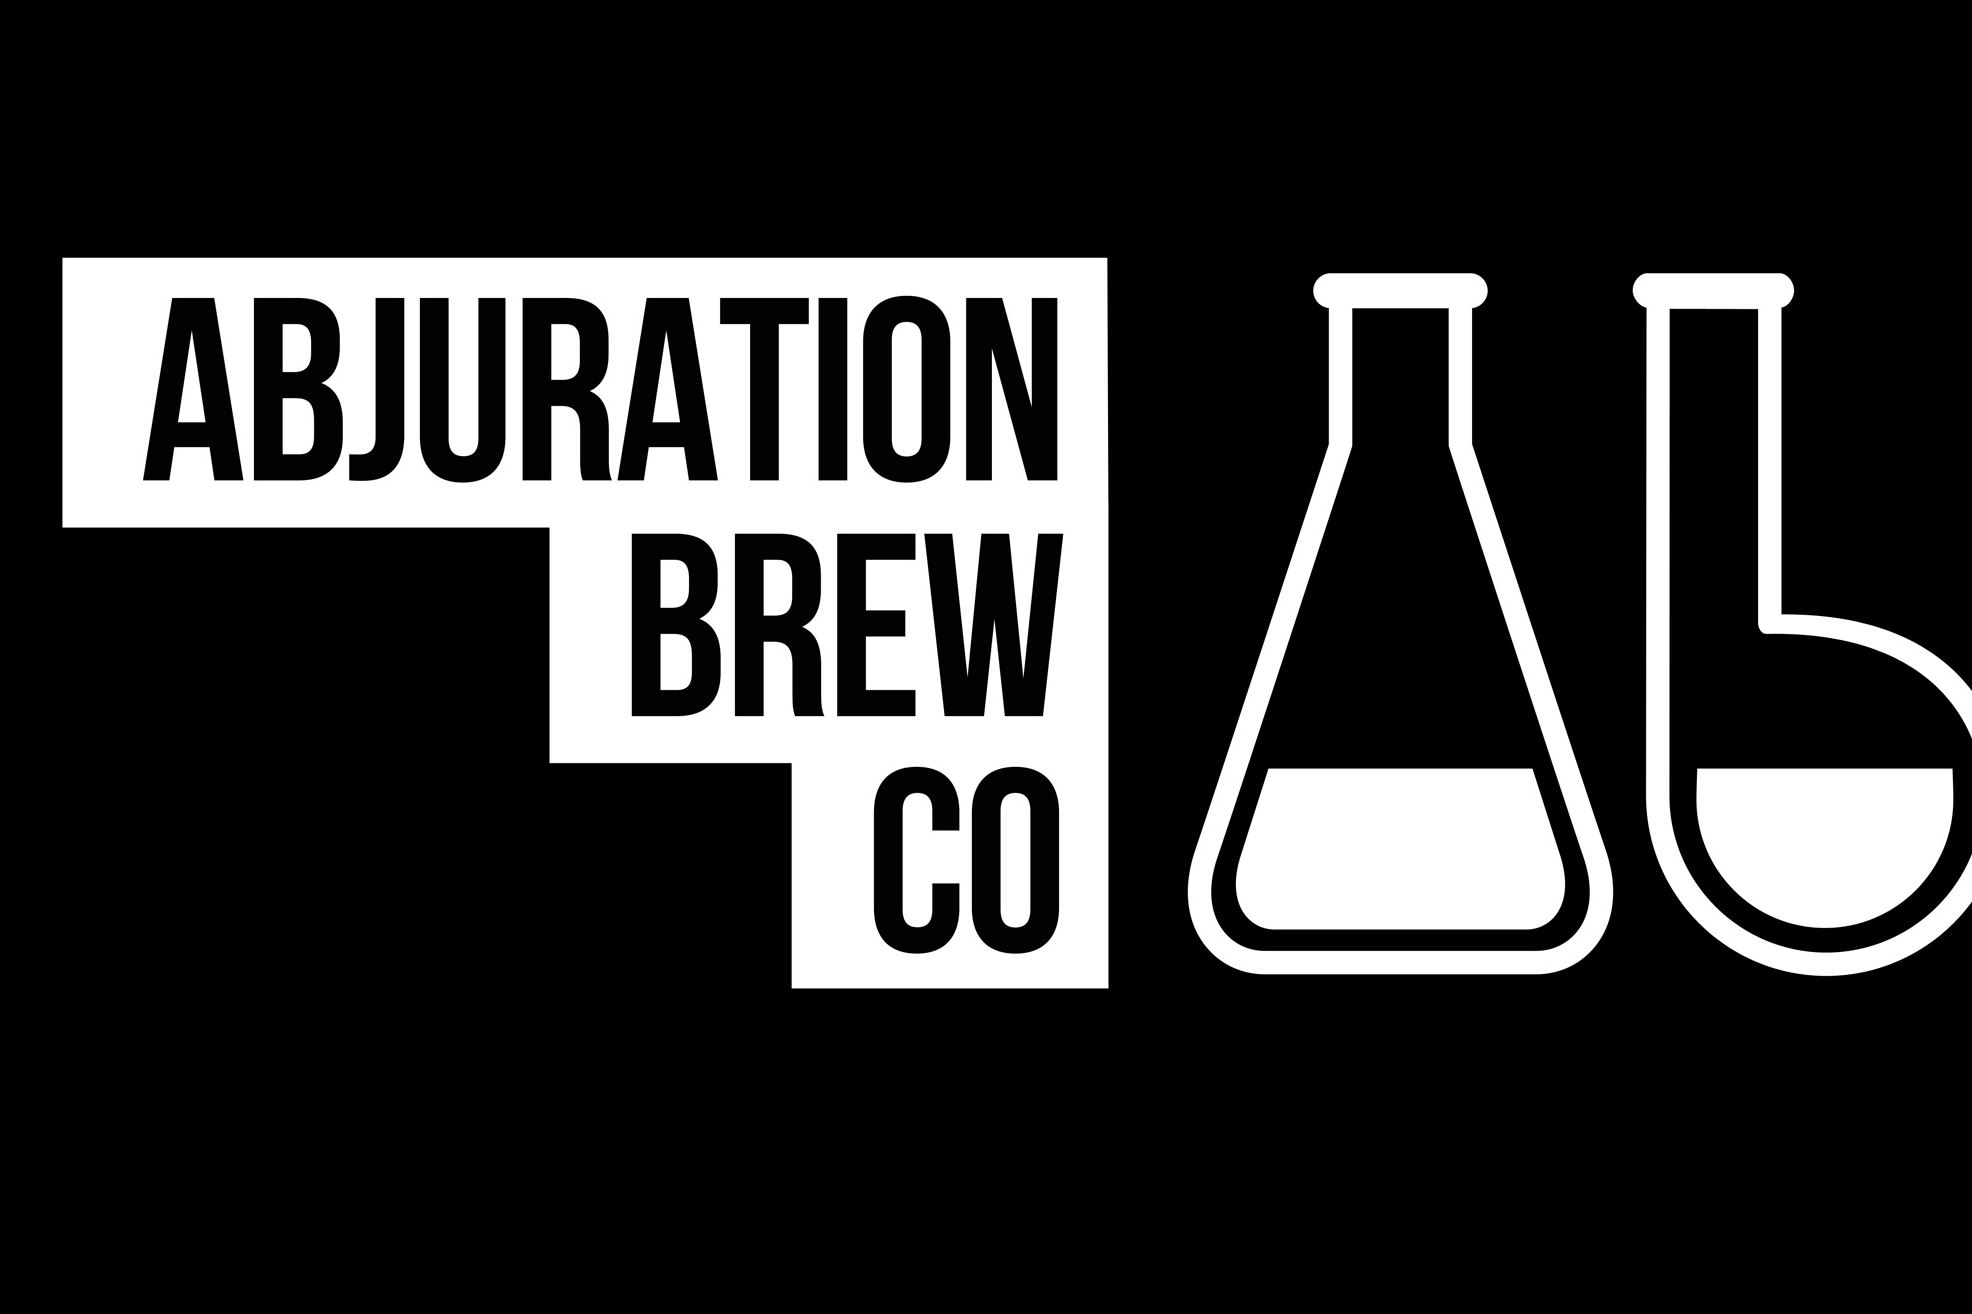 logoBeersREV-3 The logo for Abjuration Brewing Co., which aims to open by early next year in the Parkway Theater in McKees Rocks.